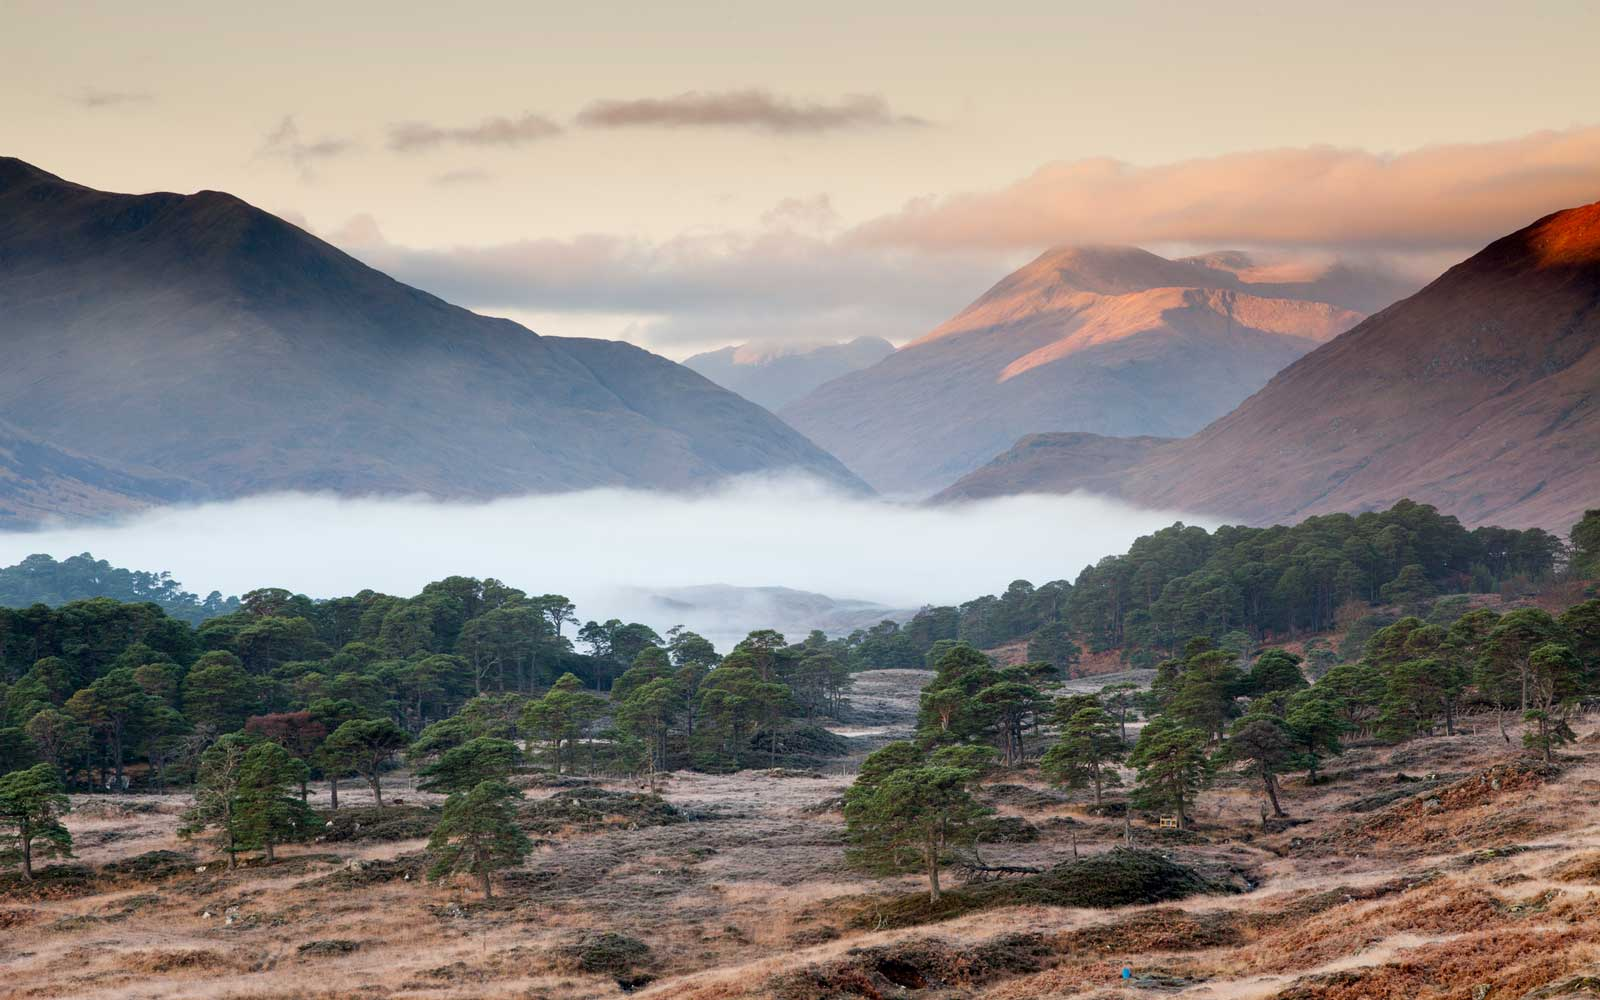 Low autumn mist at dawn in Glen Affric, Highlands, Scotland.